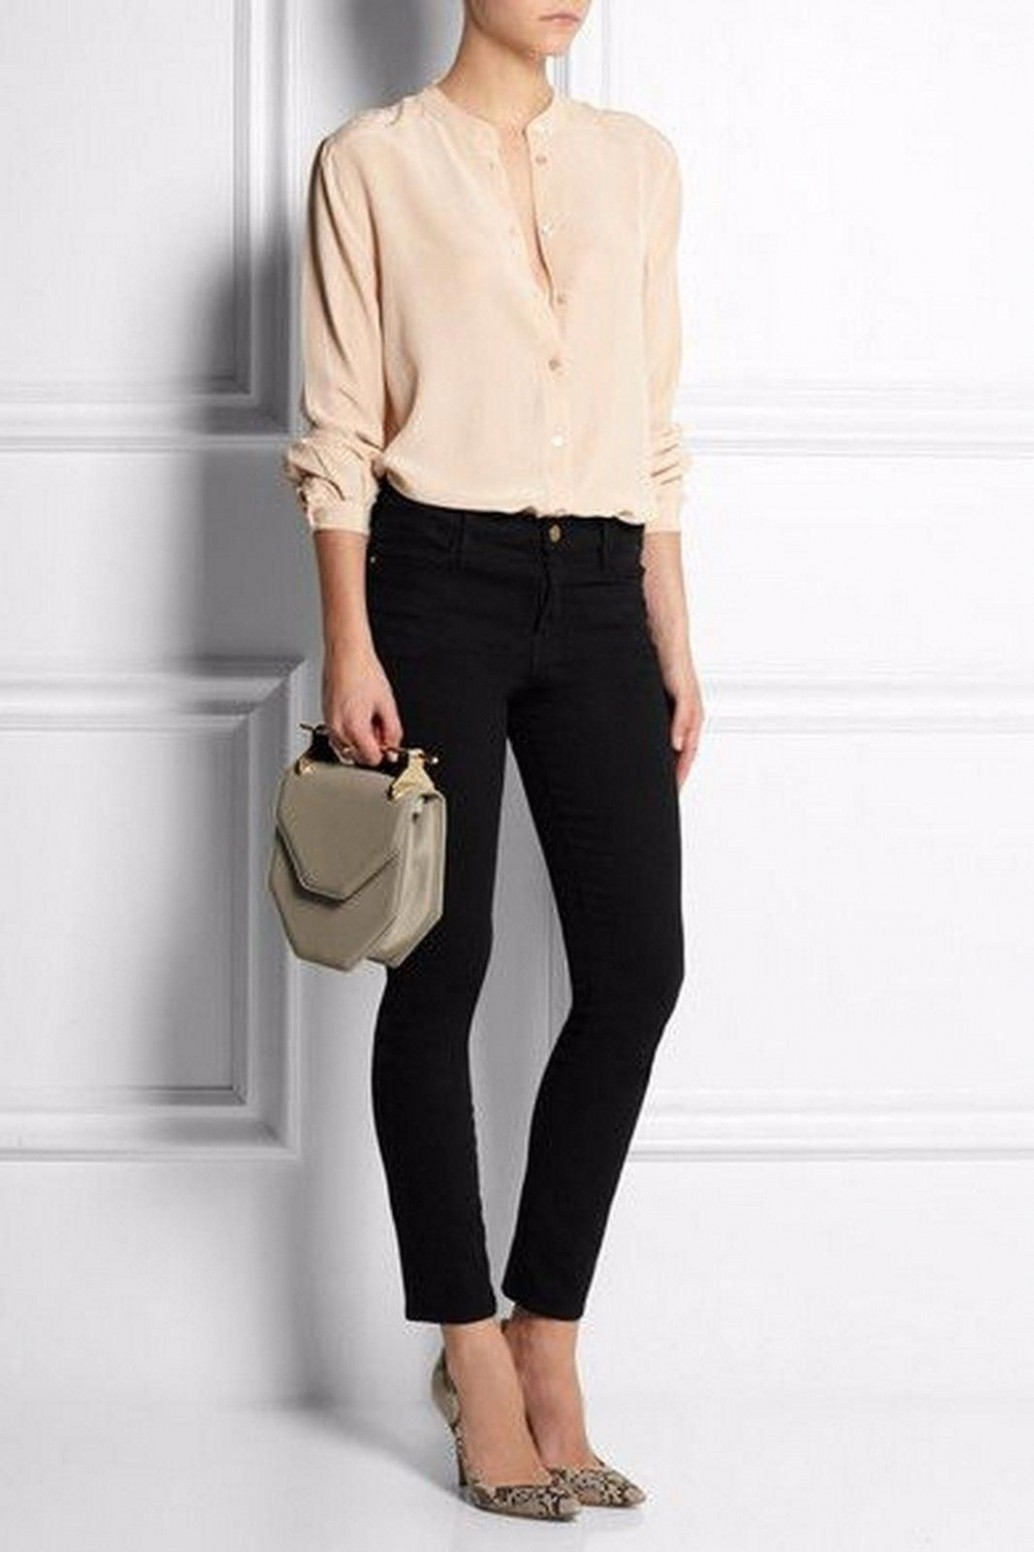 fashionable business attire #businessattire in 11 business business outfit frau